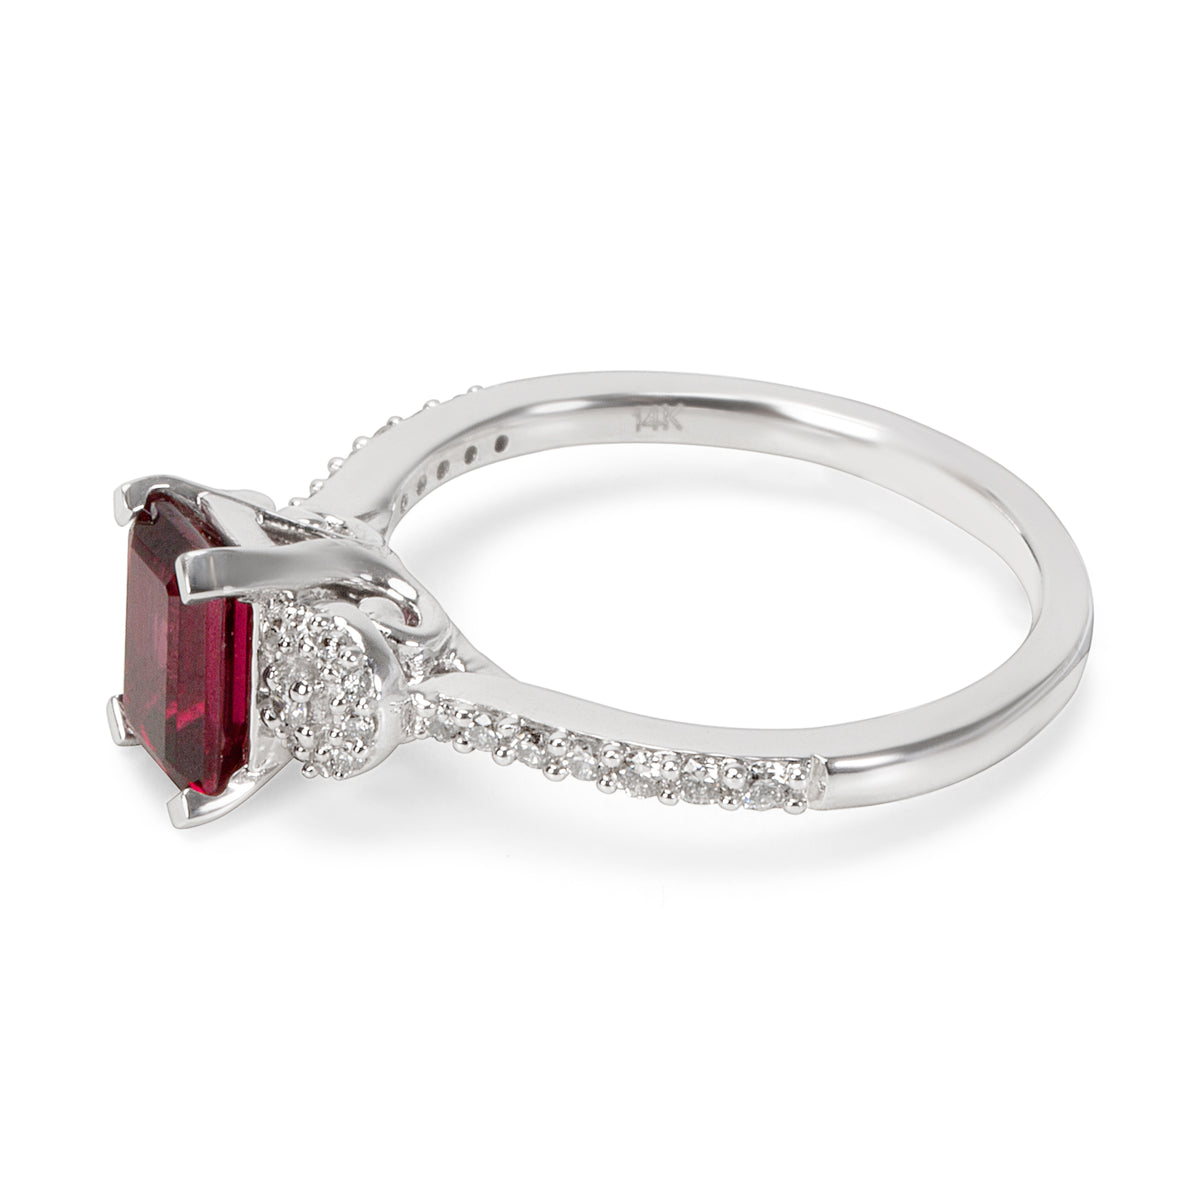 BRAND NEW Garnet Octagon Ring in 14K White Gold with Diamonds (1.37 CTW)